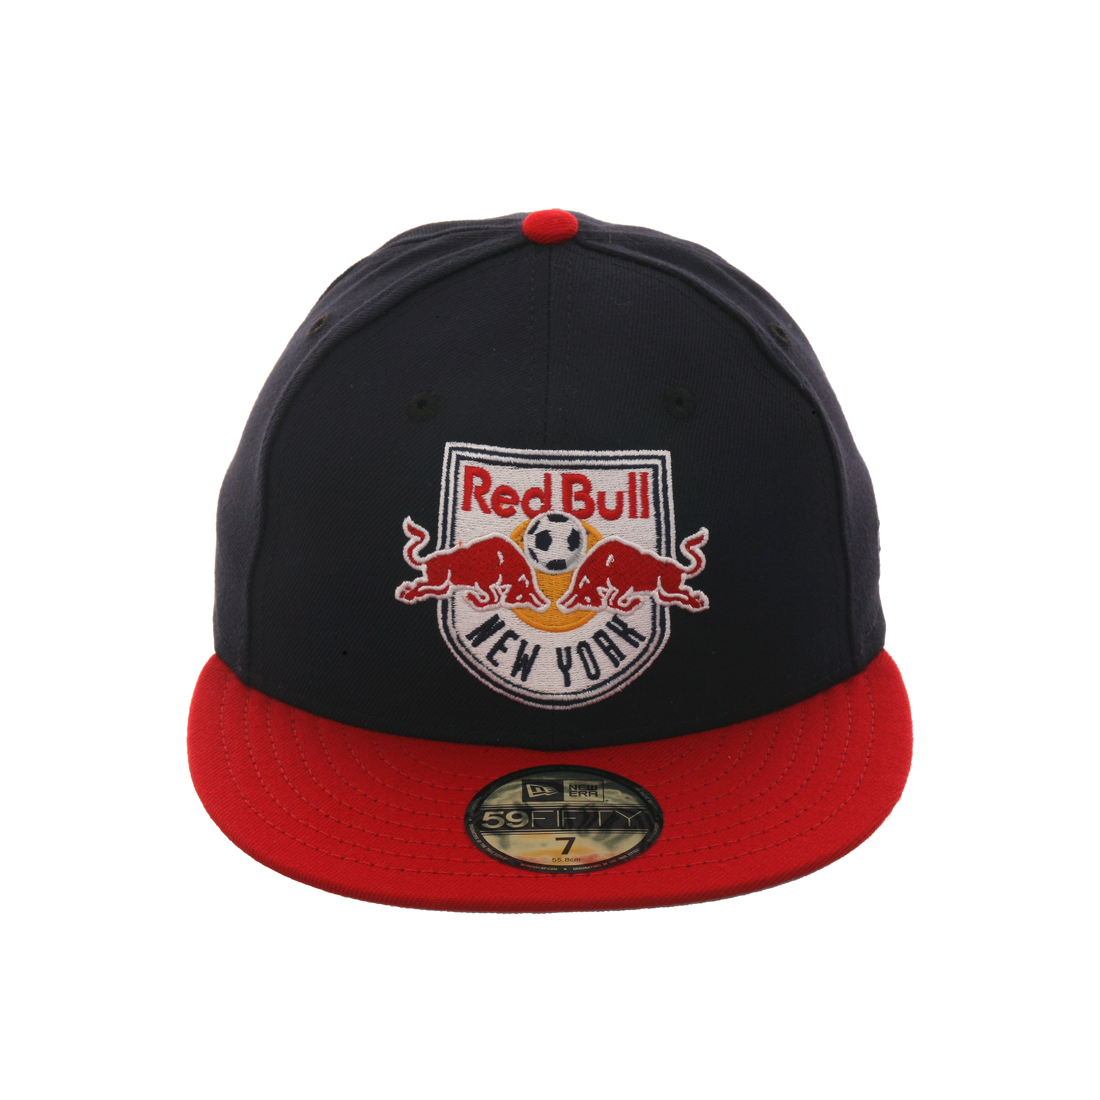 Exclusive New Era 59Fifty New York Red Bulls Hat - 2T Navy c4855ca0b107